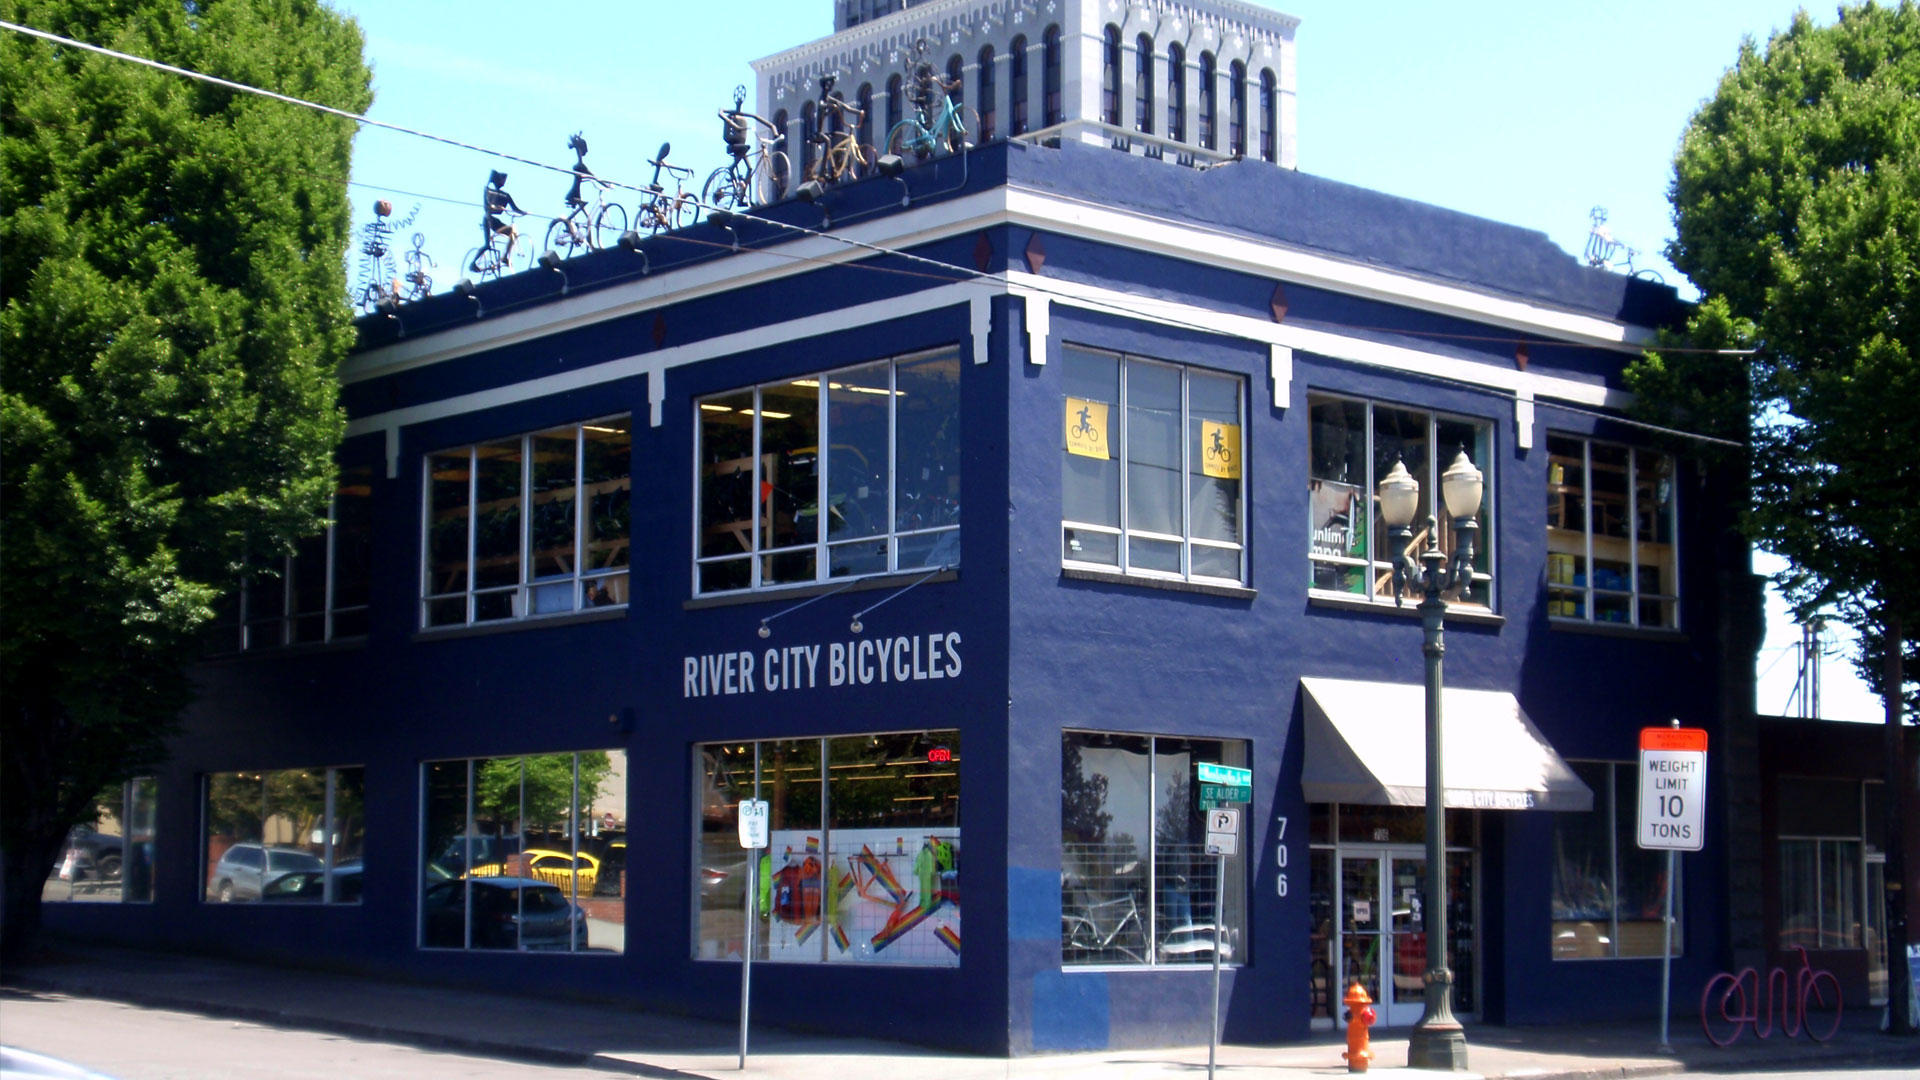 Led By The Fantastic And Friendly Folks At River City Bicycles A Portland Insution This Is Relaxed Ride Perfect For Those Just Getting Started On